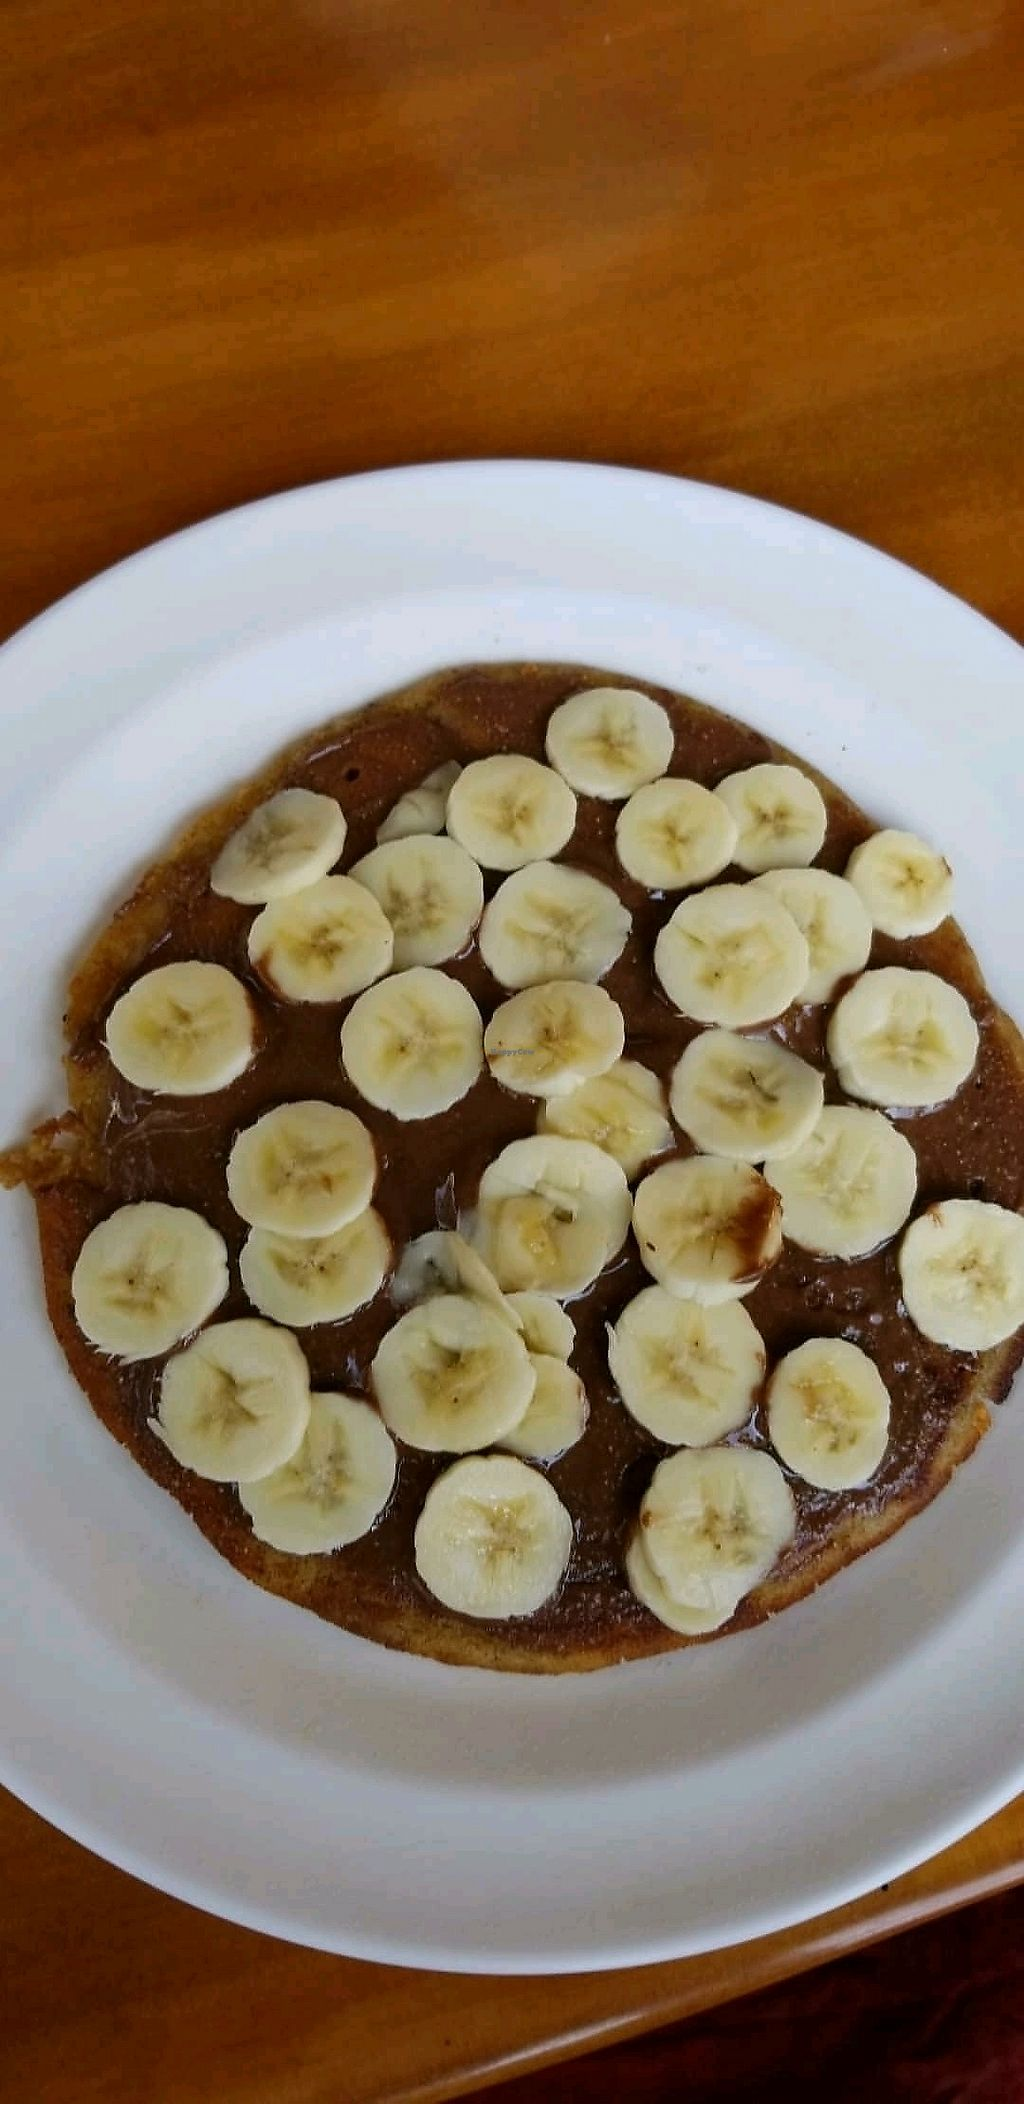 """Photo of Millets of Mewar  by <a href=""""/members/profile/Naturalia"""">Naturalia</a> <br/>vegan nutella banana pancake <br/> January 28, 2018  - <a href='/contact/abuse/image/30697/352001'>Report</a>"""